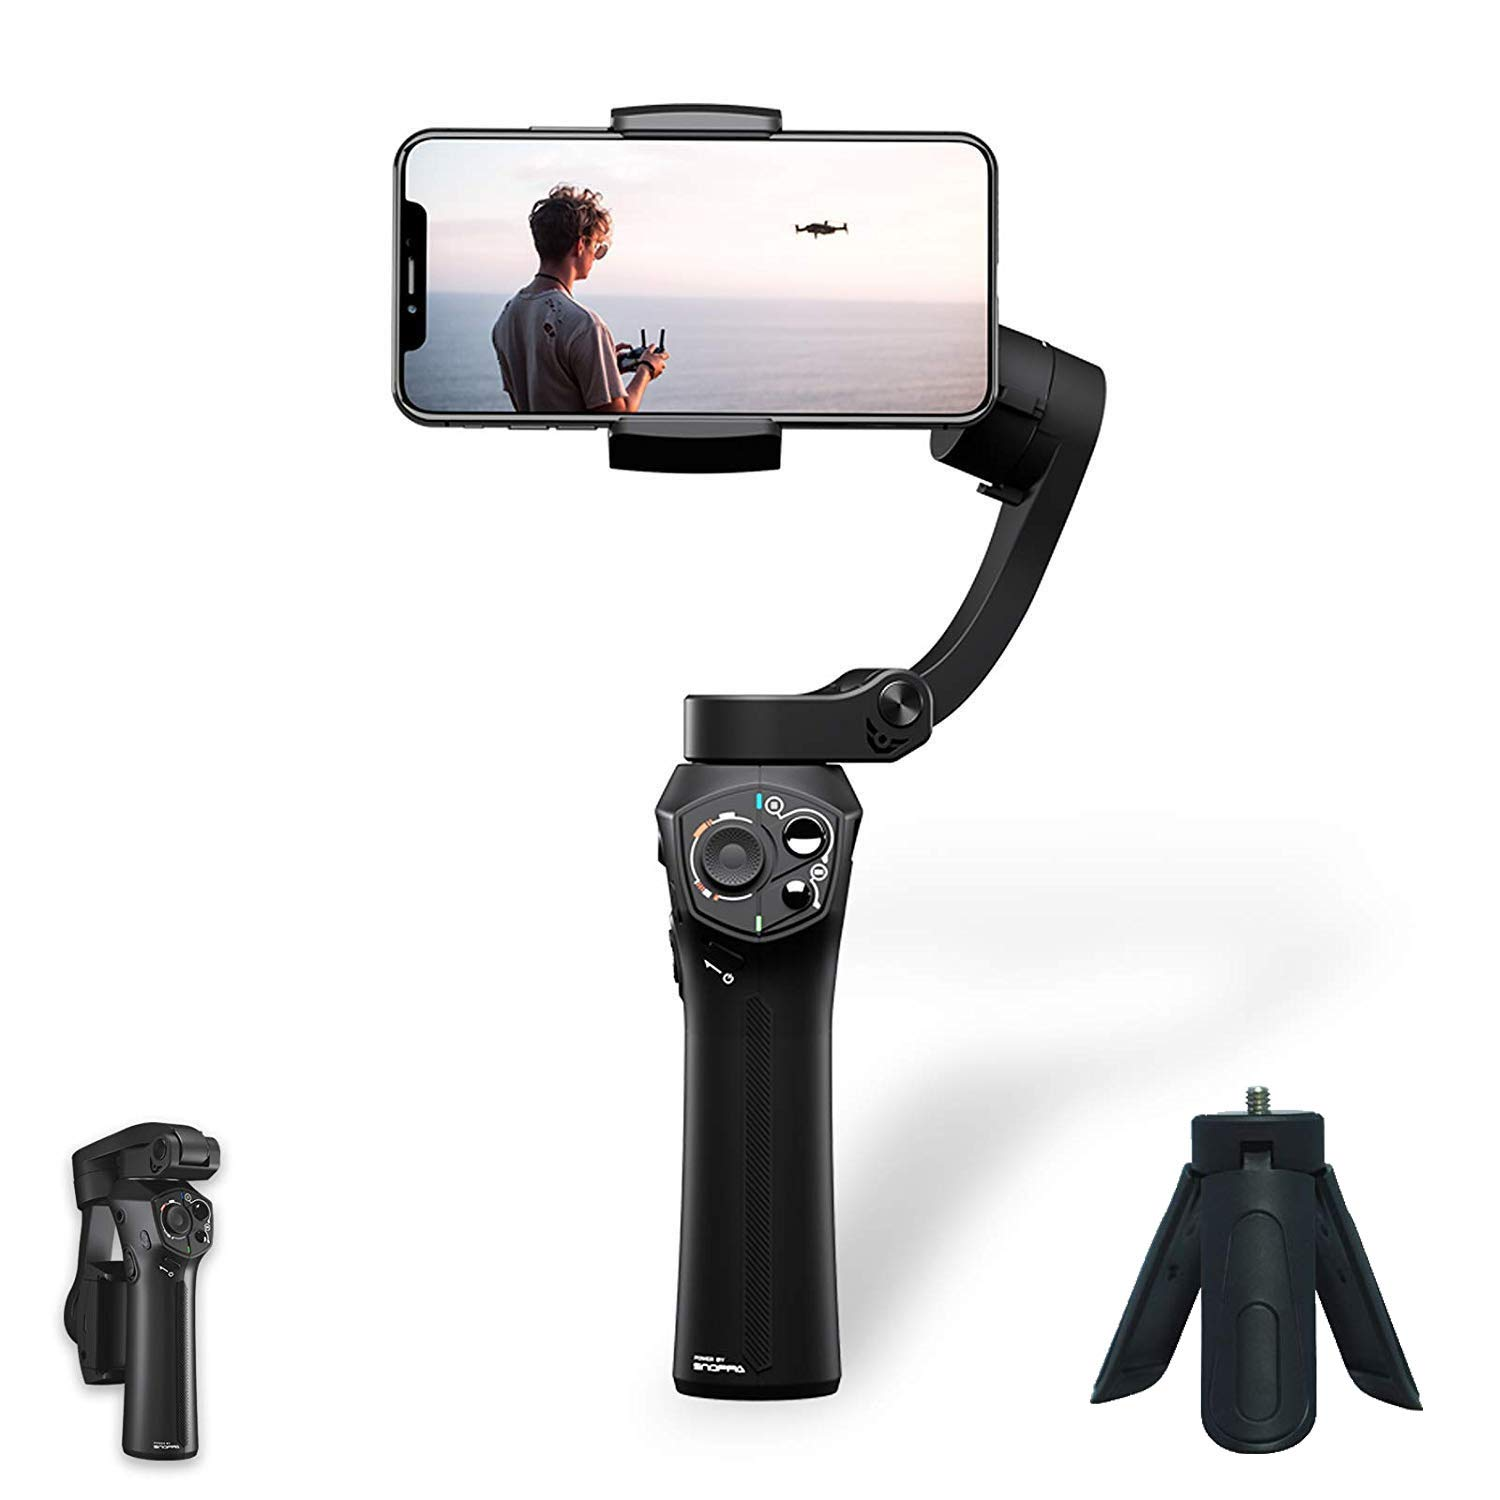 [Official Store] Snoppa Atom a Pocket Sized 3 axis Smartphone Handheld Gimbal Stabilizer w/Focus Pull & Zoom for iPhone Xs Max Xr X 8 Plus 7 6 SE Android Smartphone Samsung Galaxy S9+ S9 S8+ S8 S7 by Snoppa